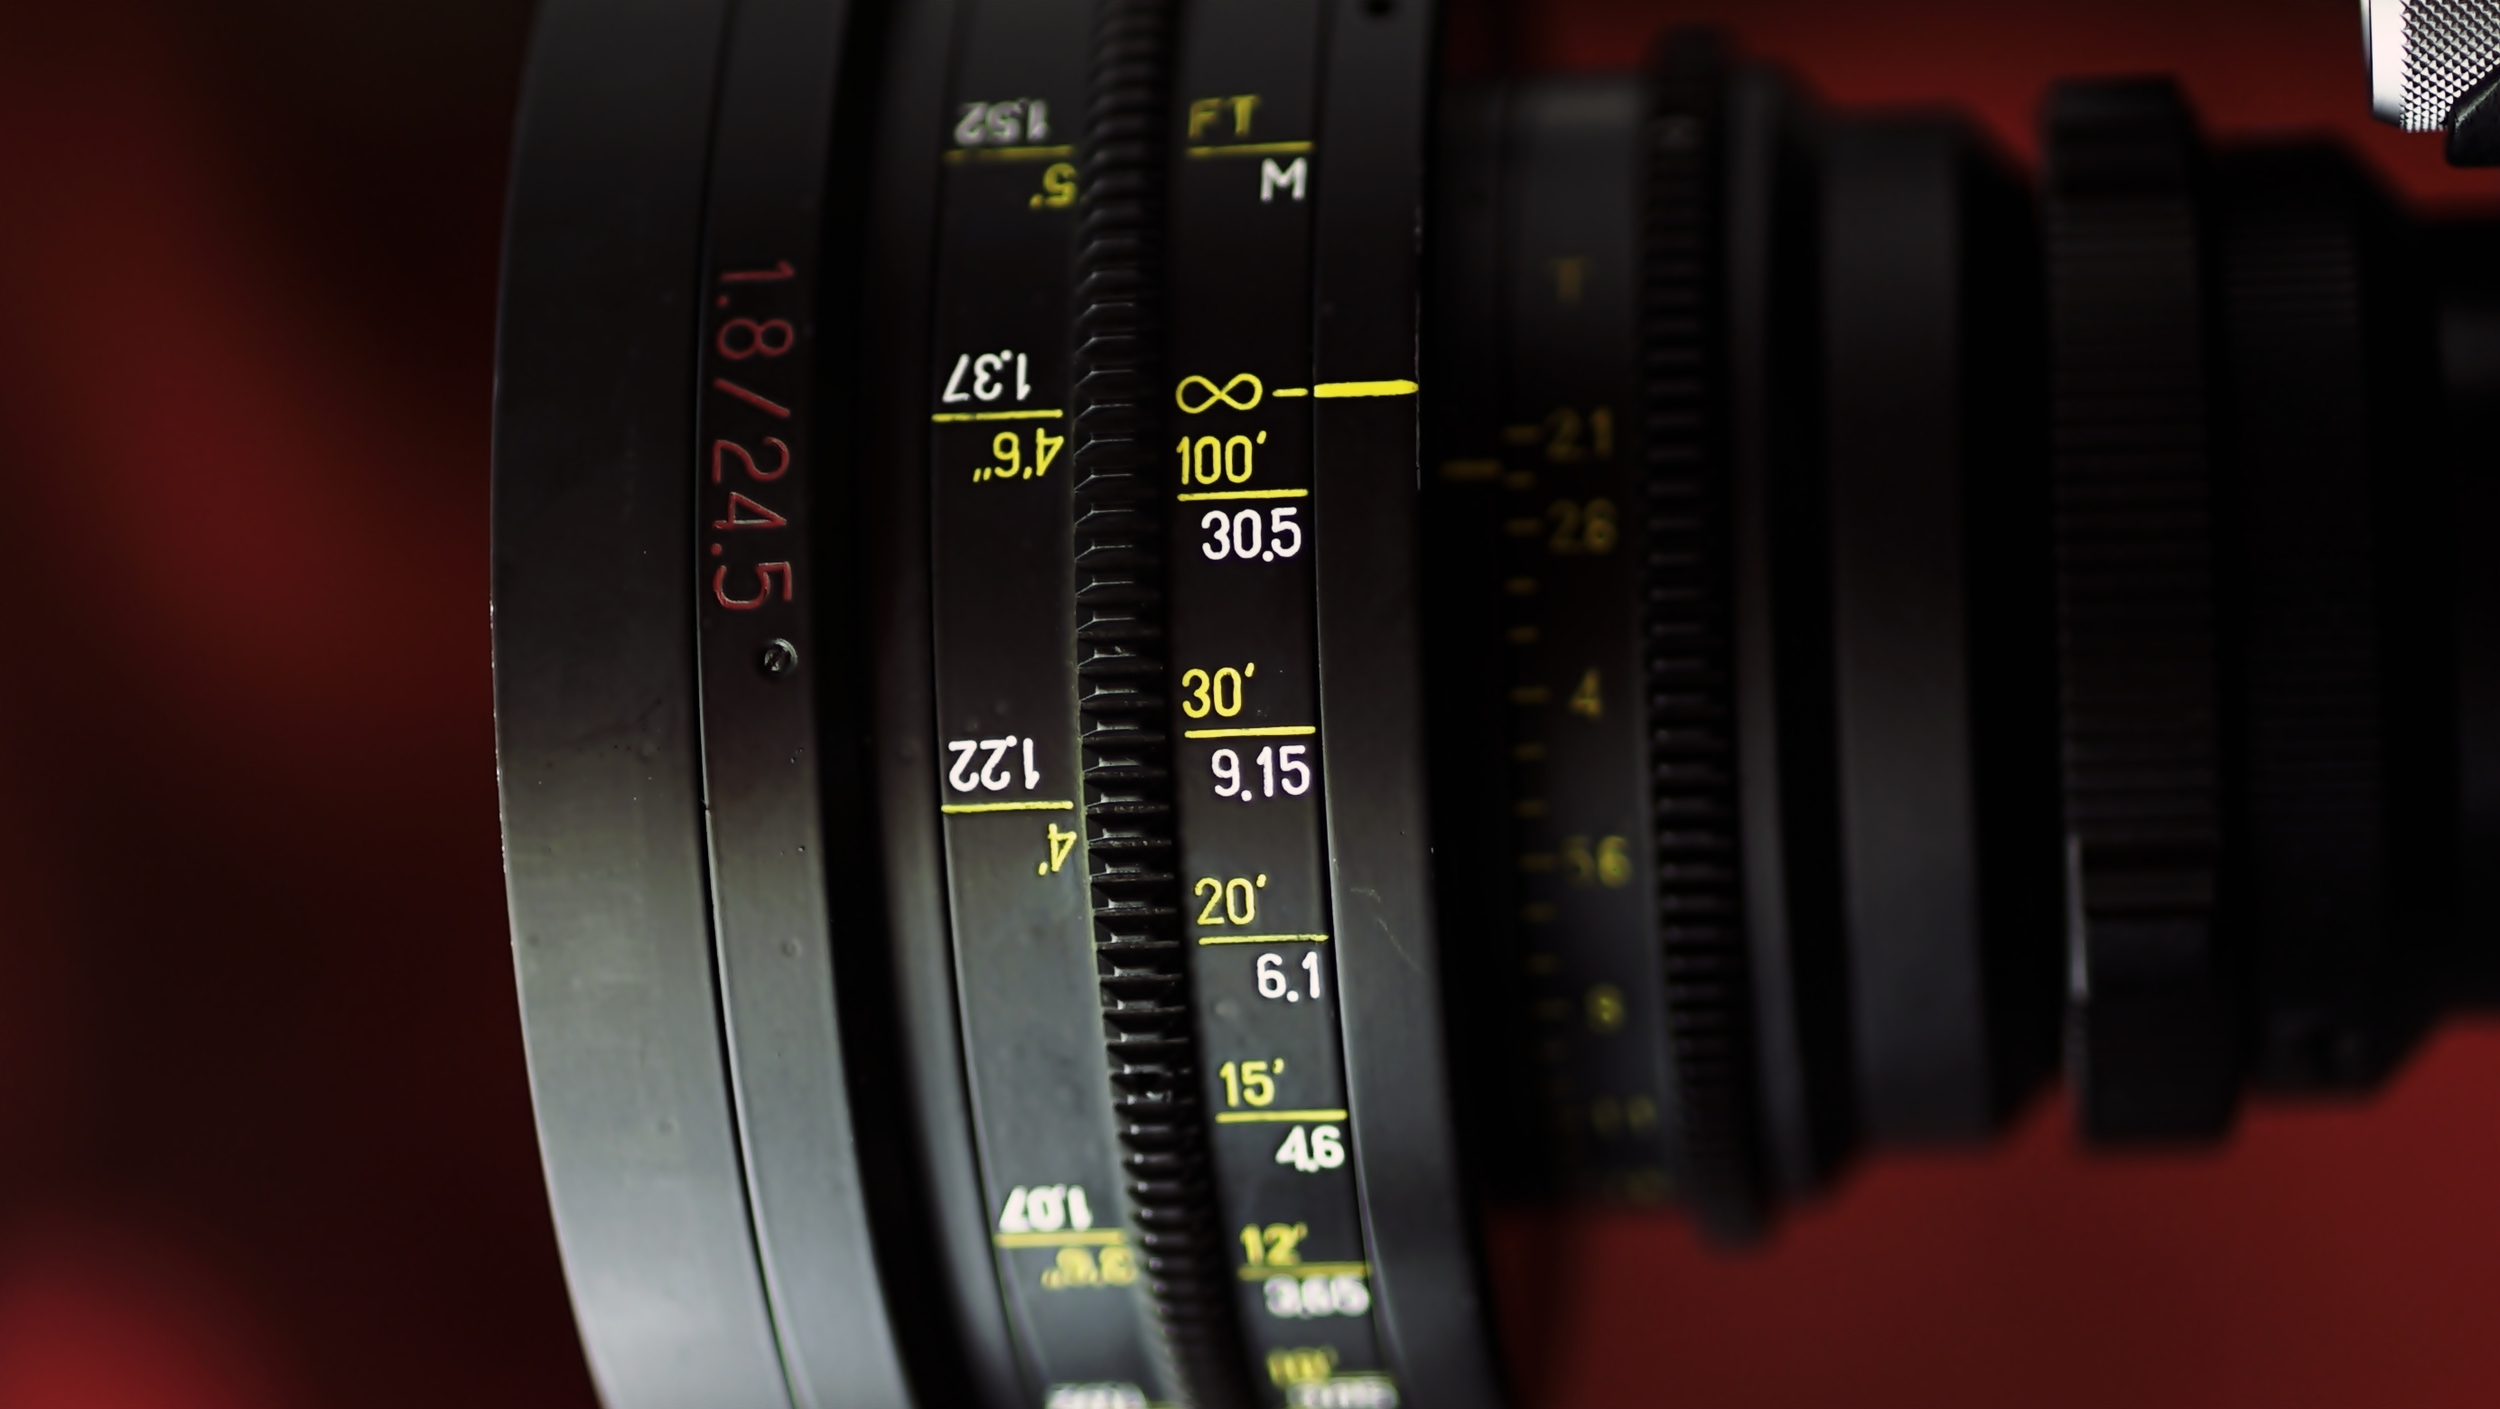 Elite 24.5mm T2.1/f1.8 - Photo by Keith Nickoson